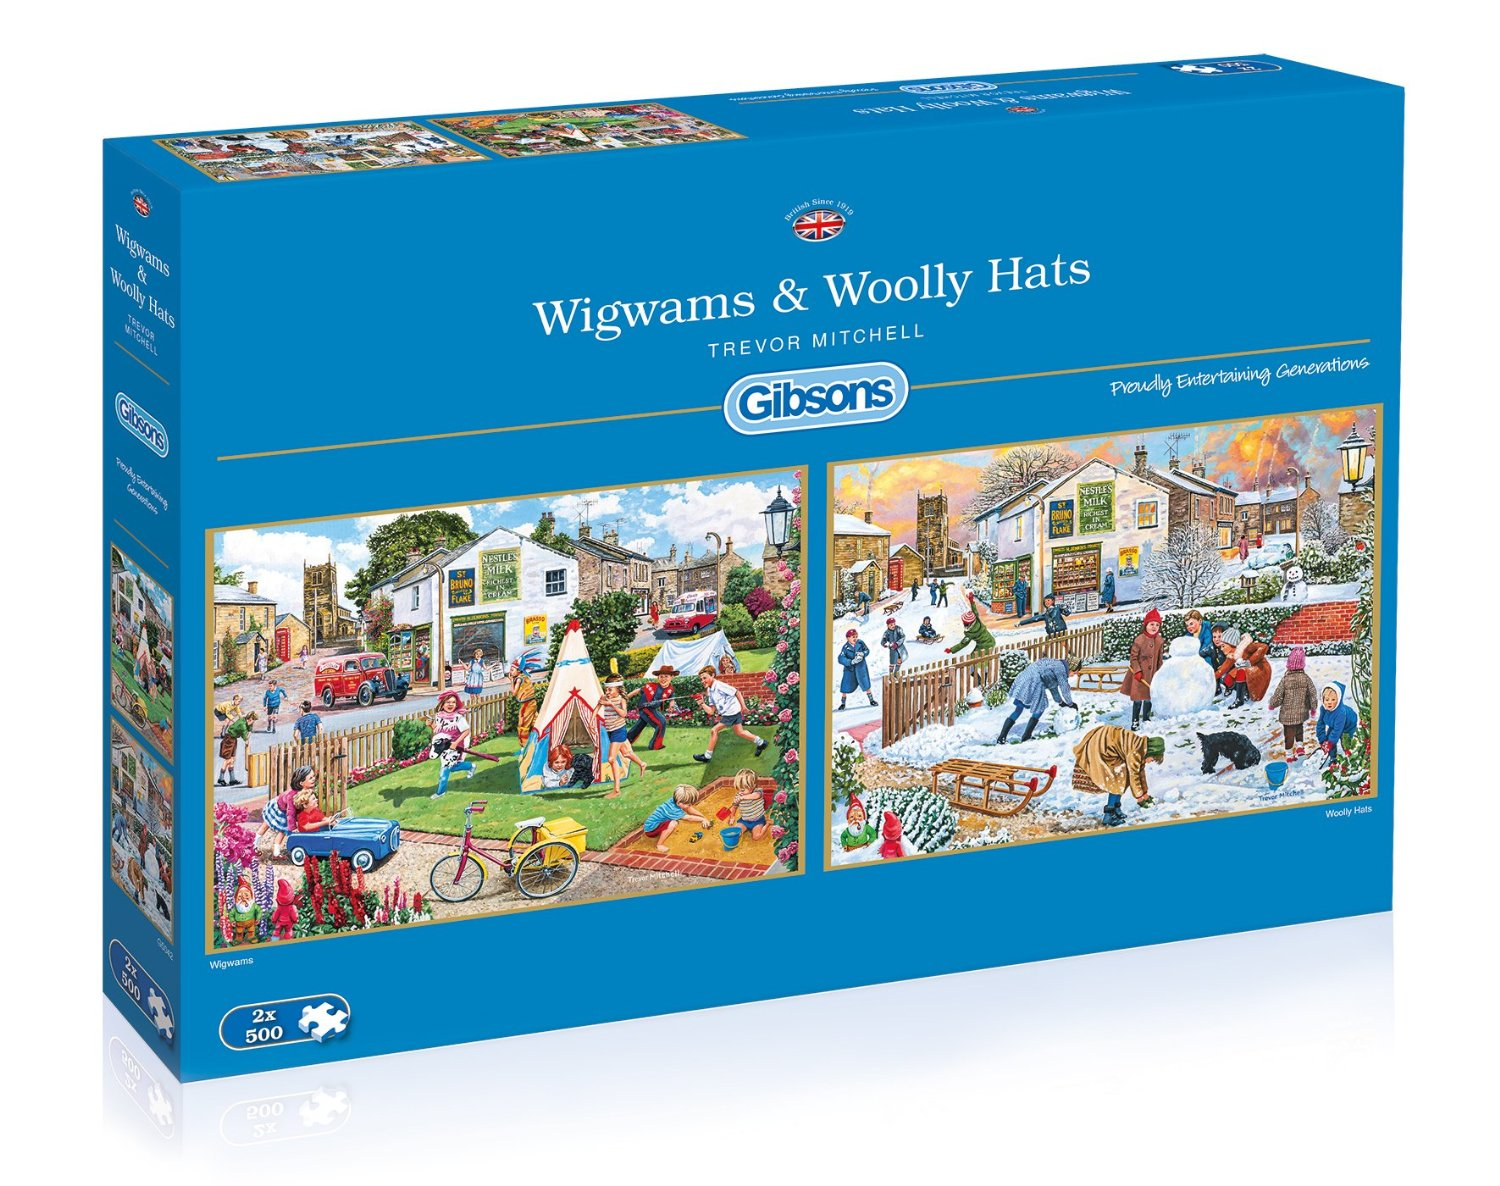 2-puzzles-trevor-mitchell-wigwams-and-woolly-hats, 16.16 EUR @ fou